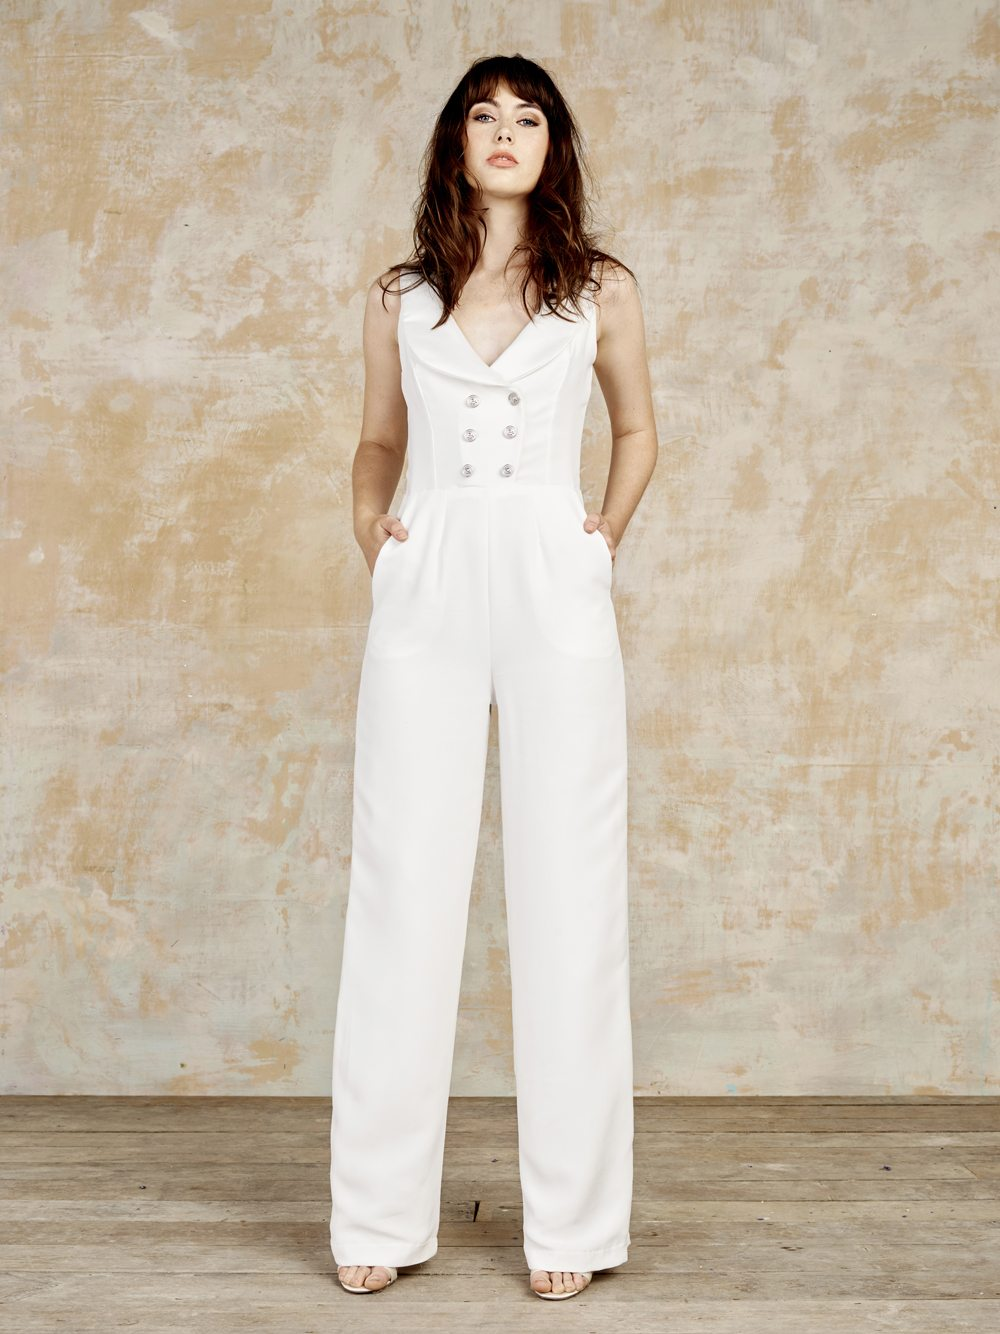 Laird bridal jumpsuit from House of Ollichon